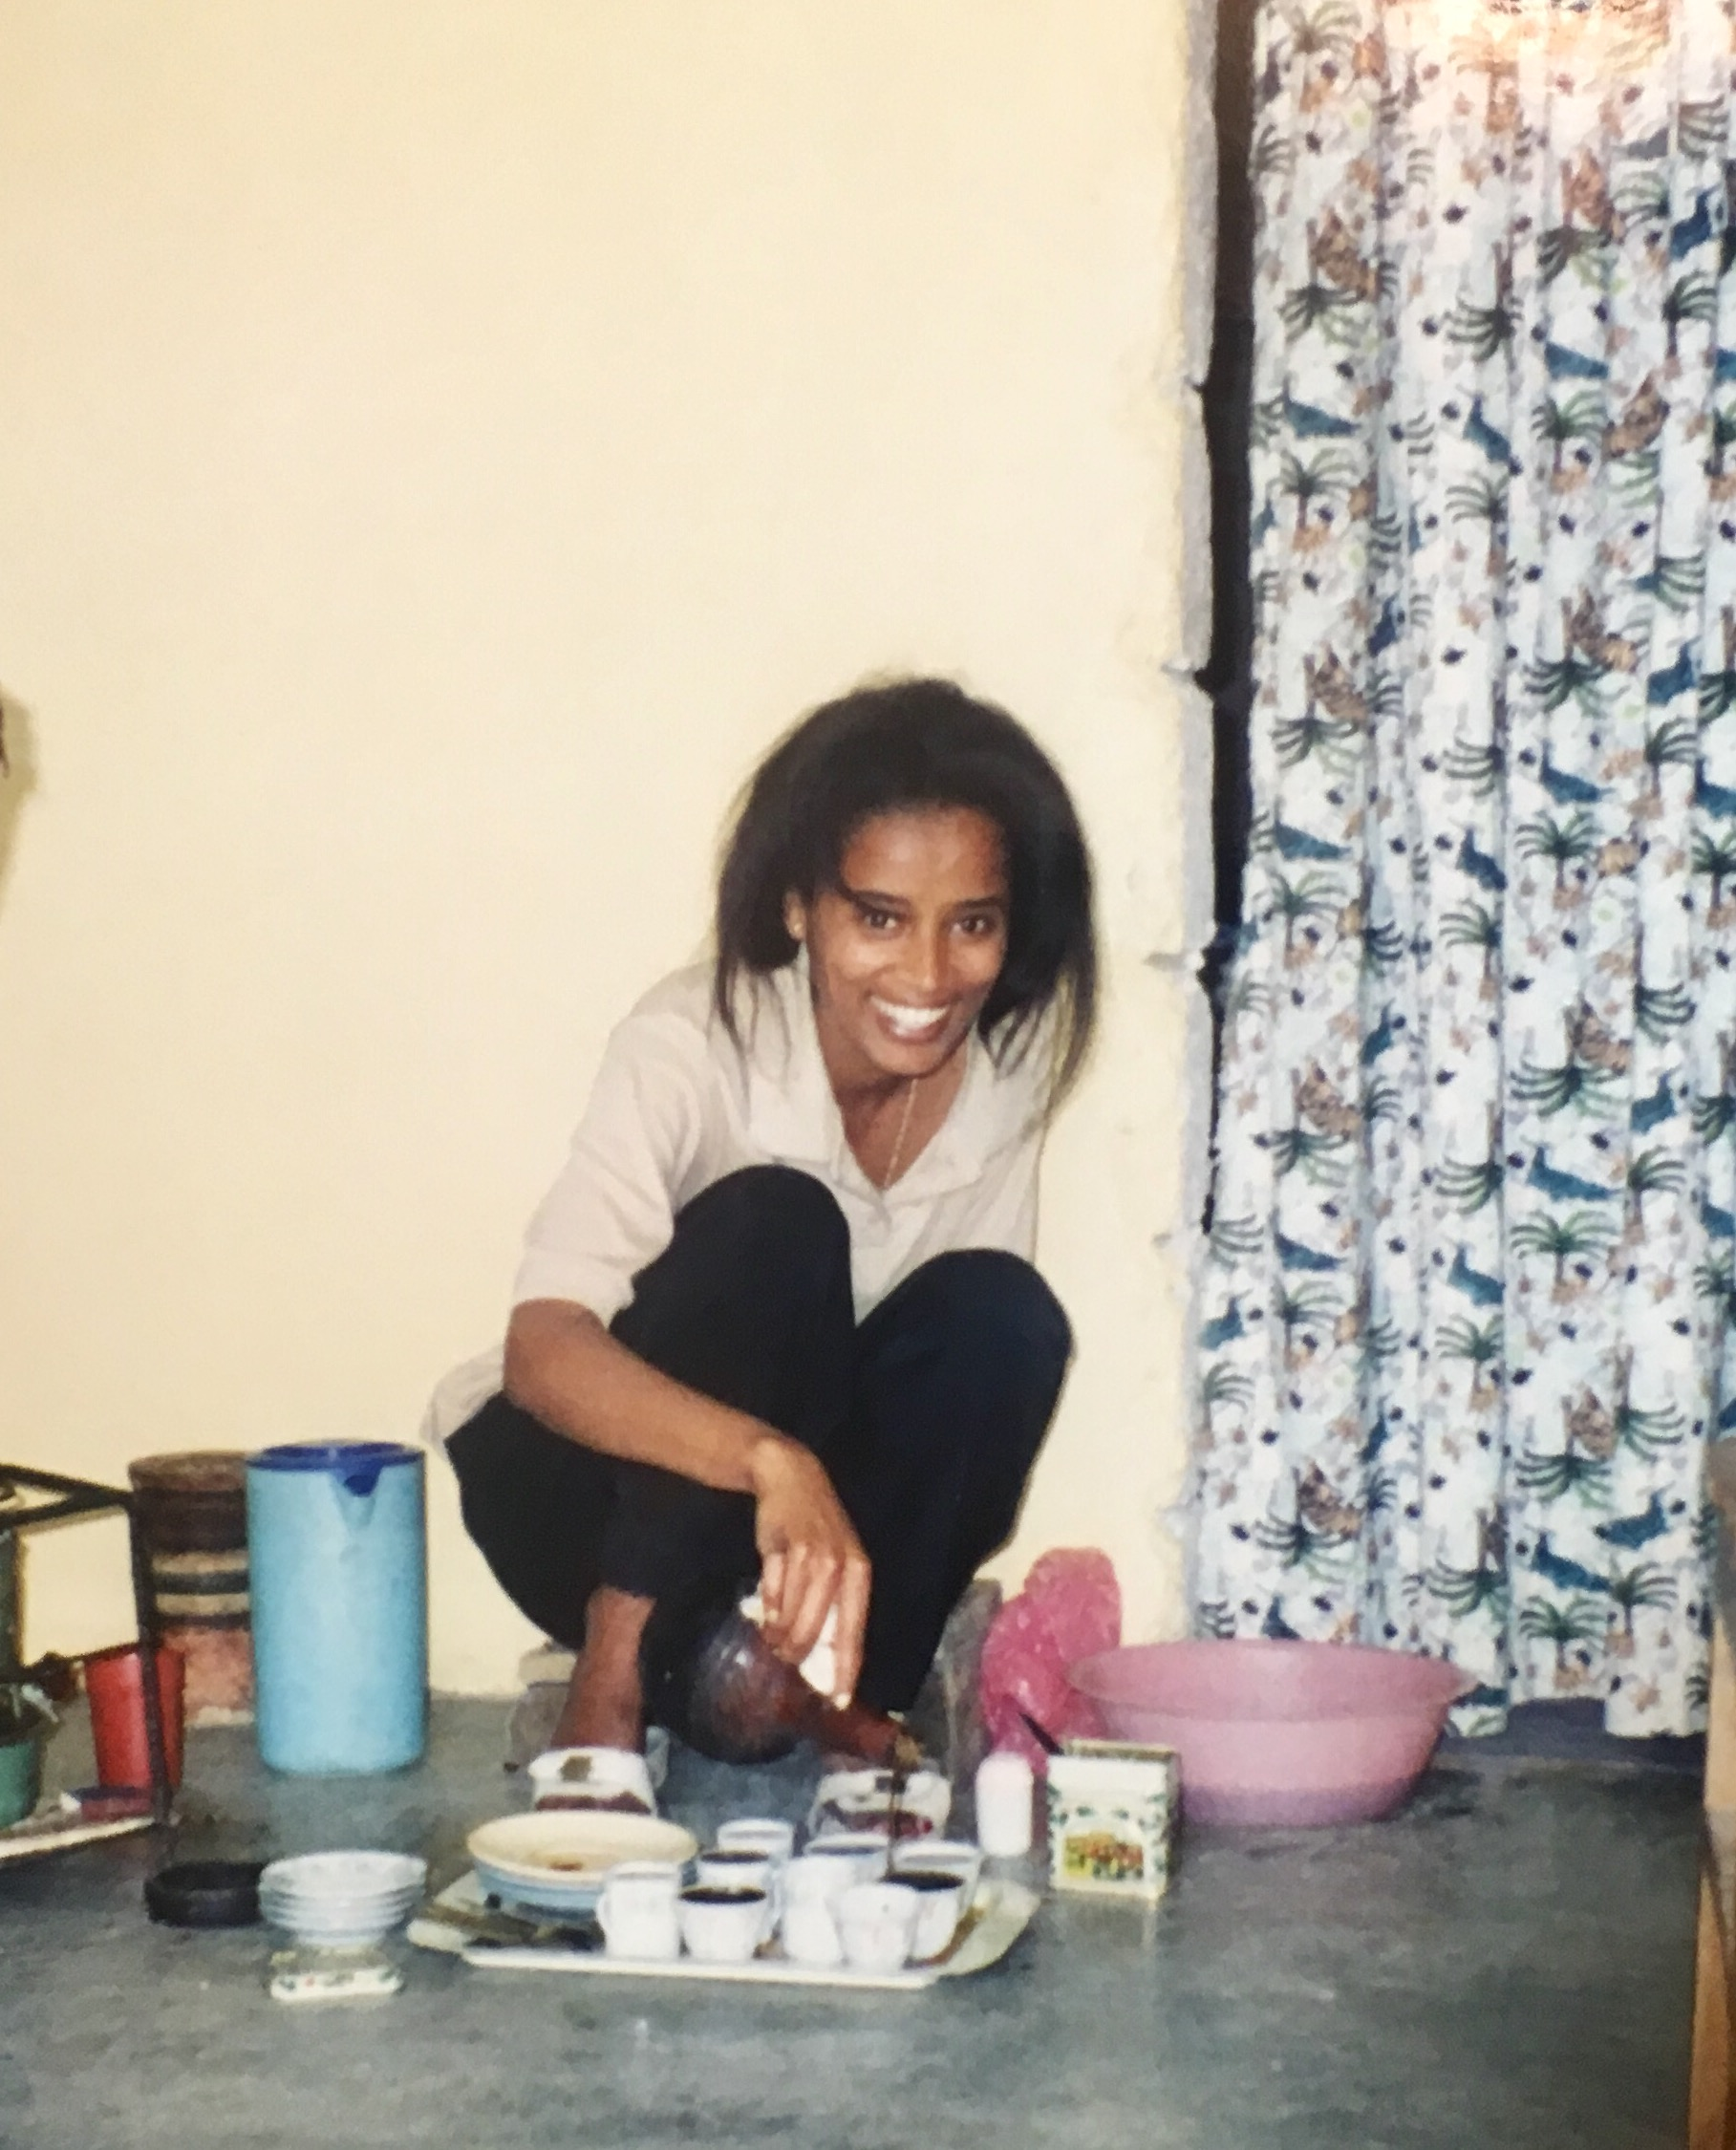 The author's aunt Ruth preparing coffee in Ethiopia.